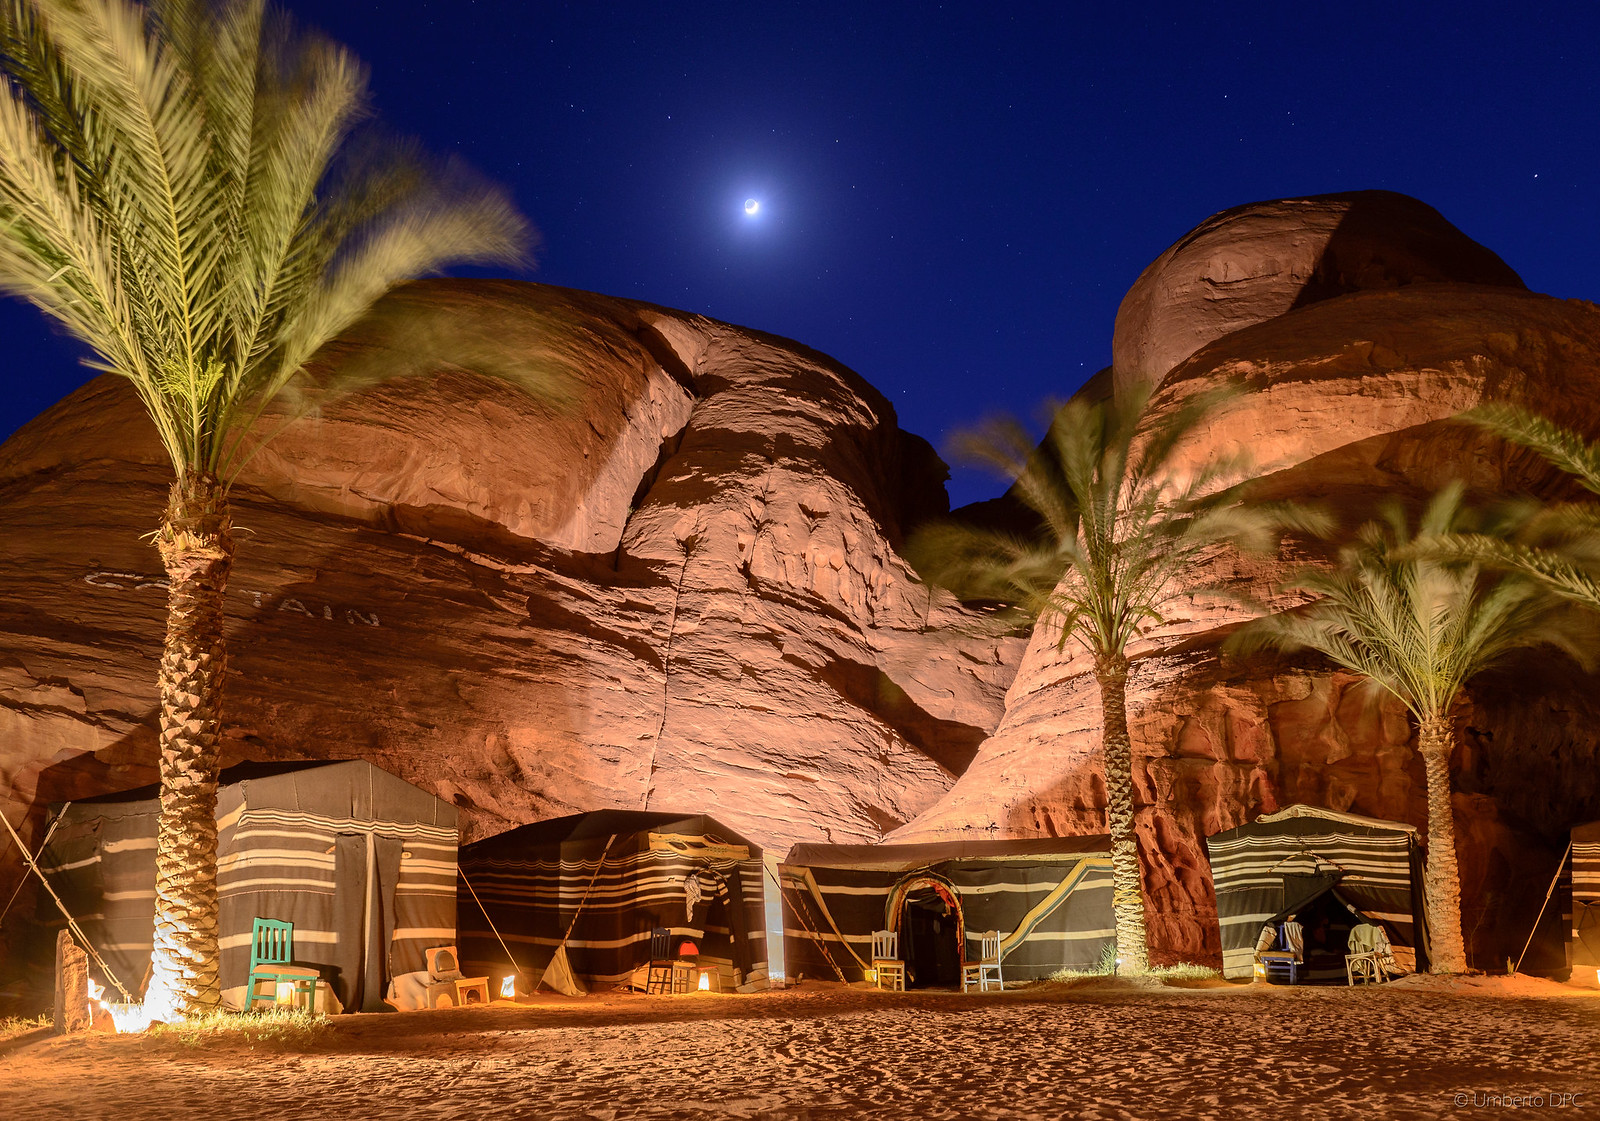 Captain's Camp in Wadi Rum (Jordan)